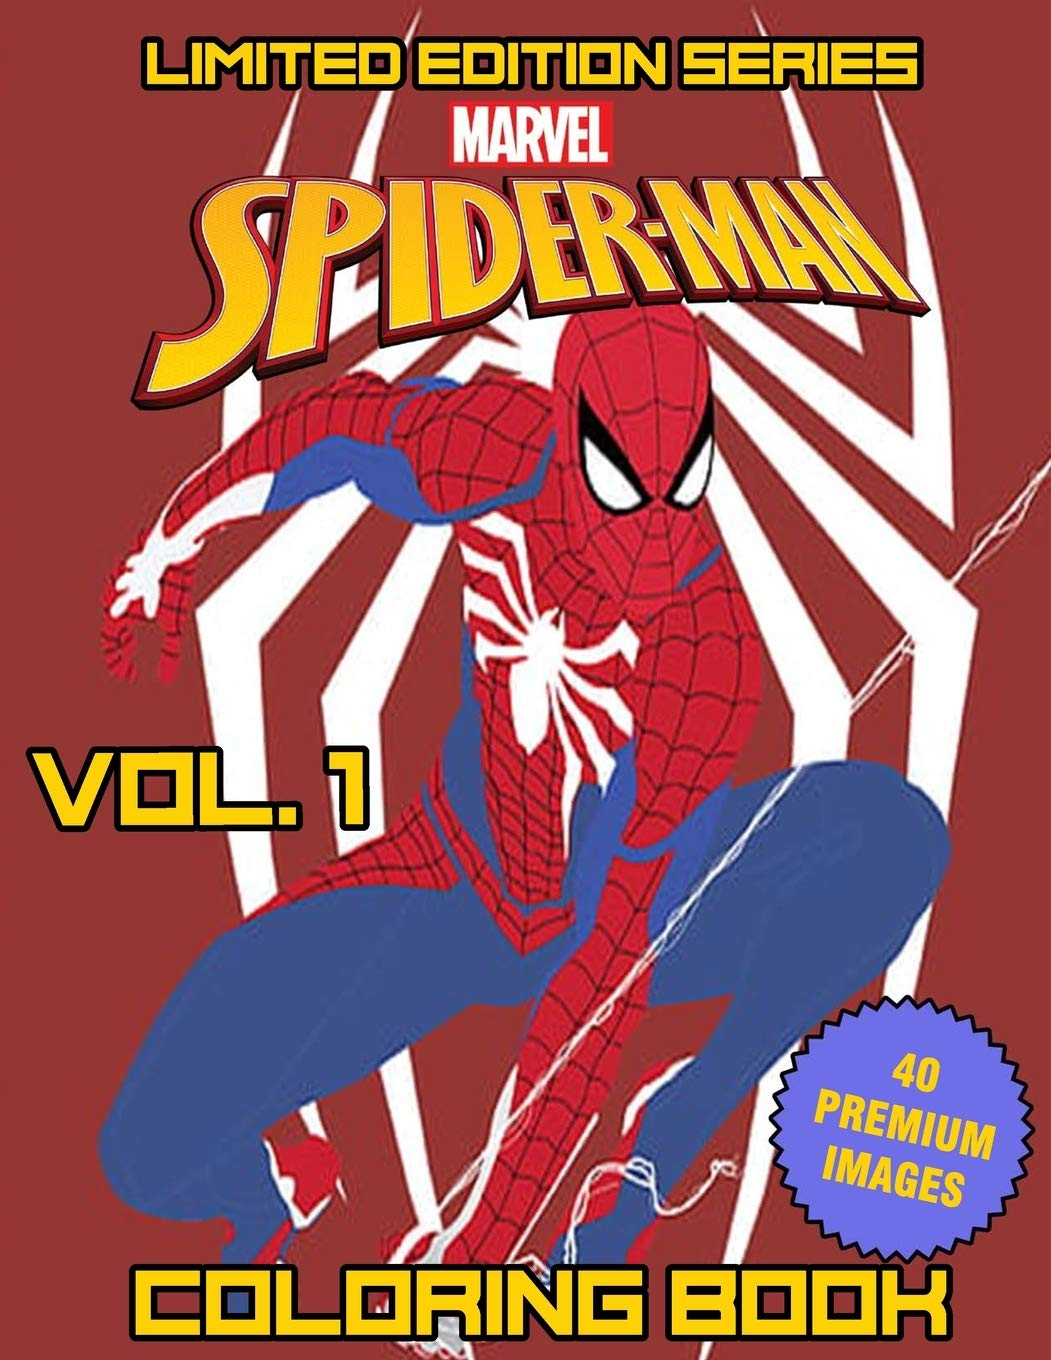 Buy Marvel Spider Man Coloring Book Vol 1 Limited Edition Series Superheroes Avenger Team Coloring Books For Kids Boys Girls Fans Adults Book Online At Low Prices In India